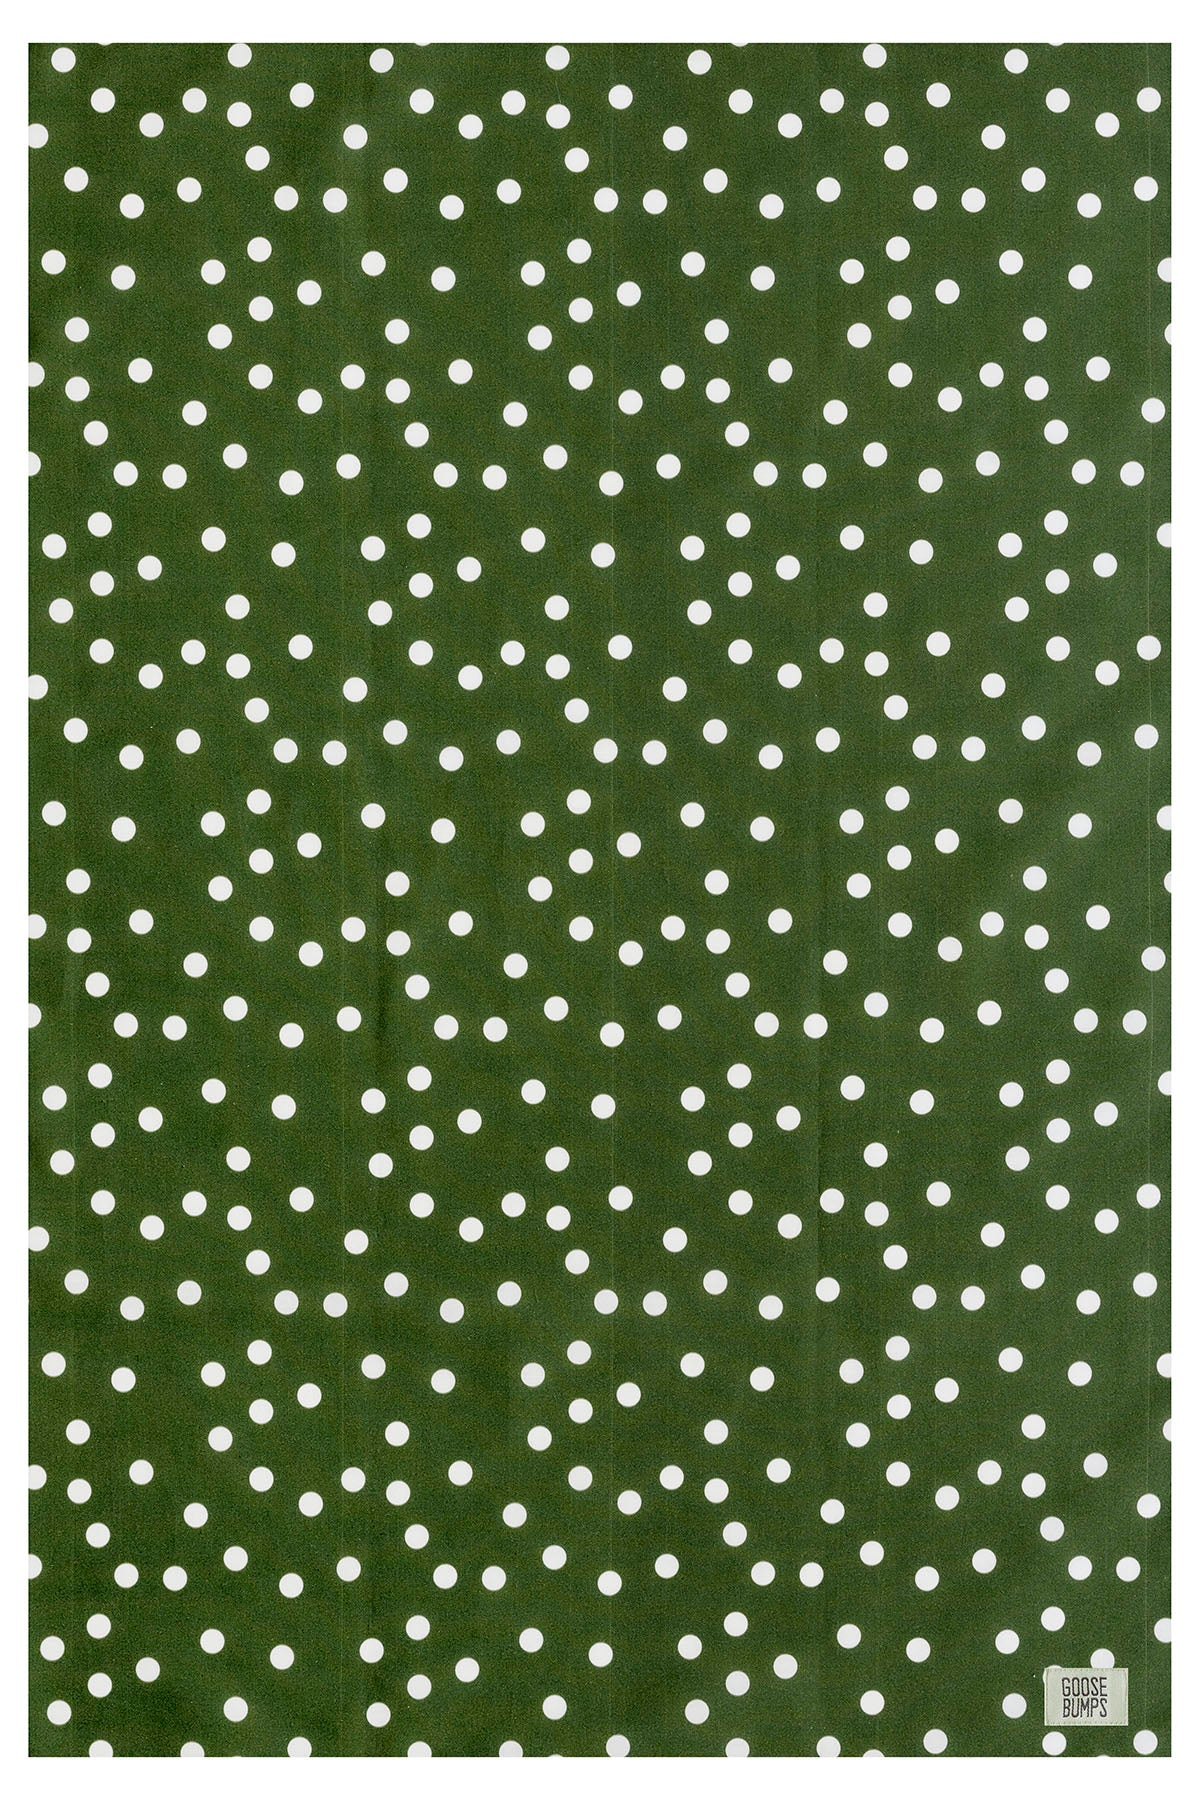 Sprinkles Kale Fitted Sheet